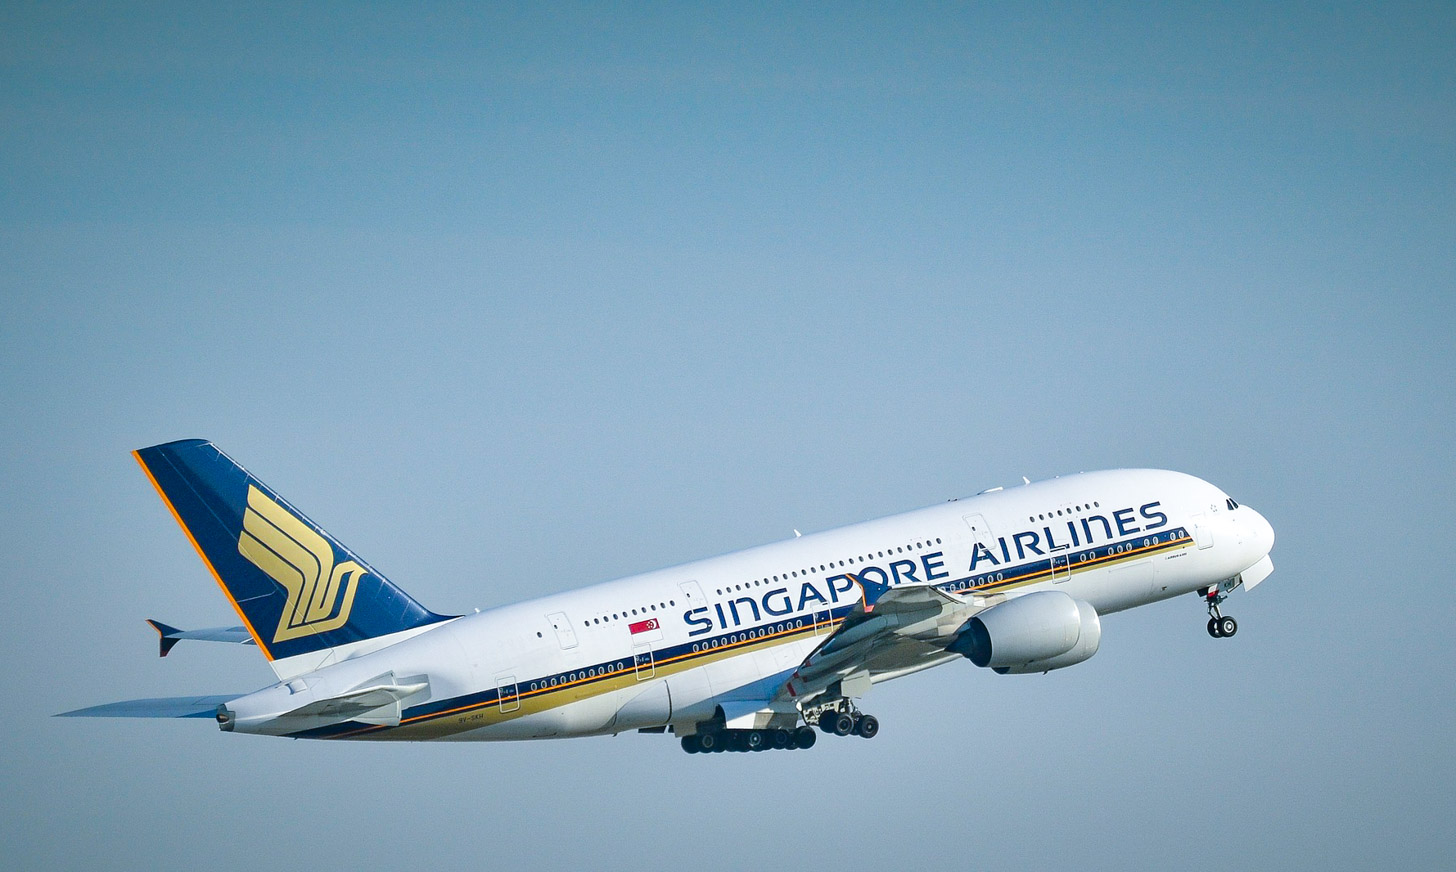 Een Airbus A380 superjumbo van Singapore Airlines